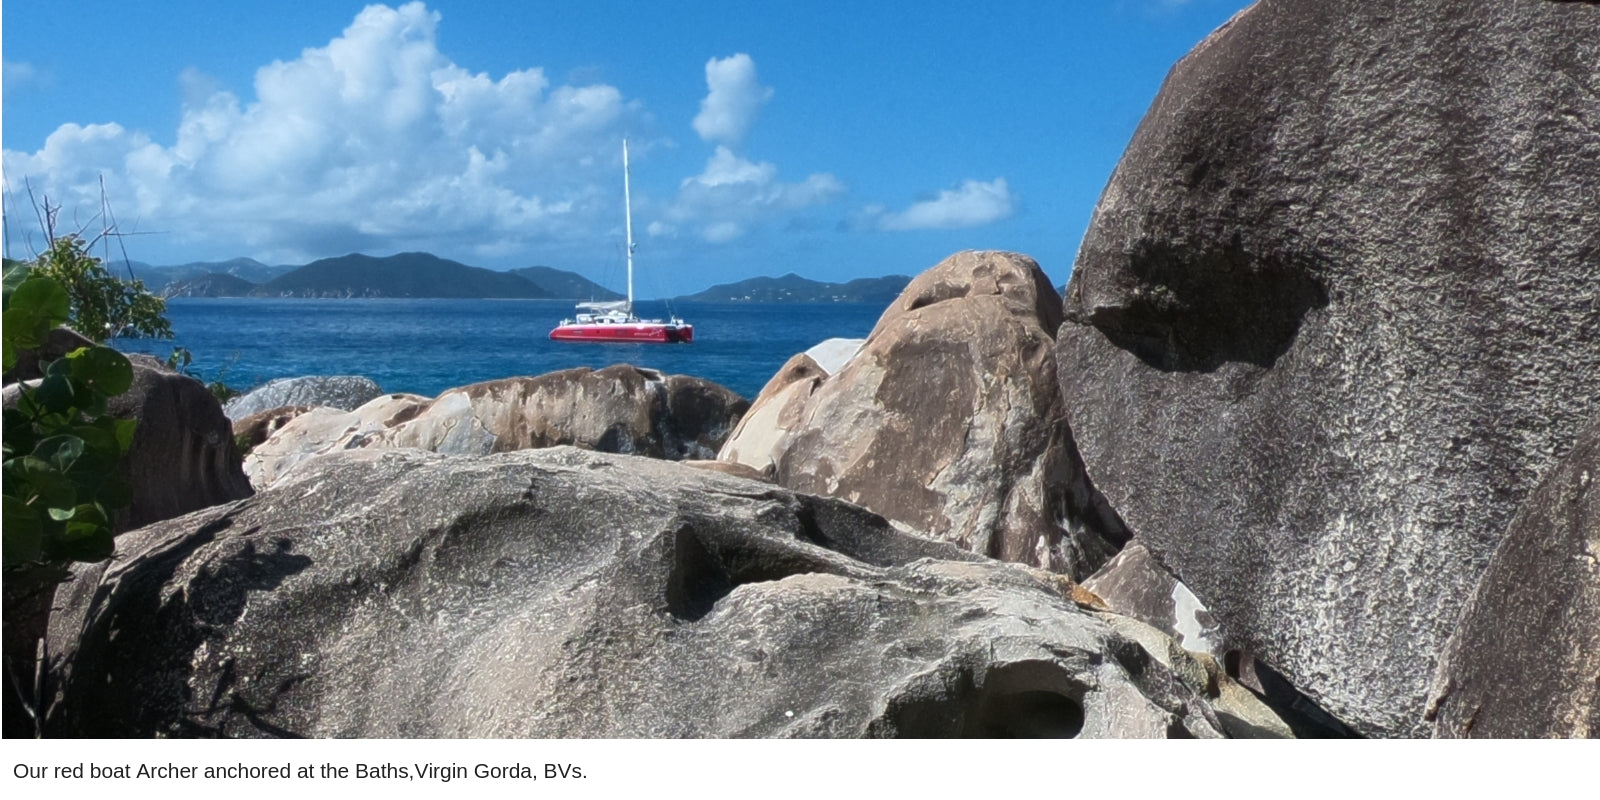 The Baths, Virgin Gorda, BVIs